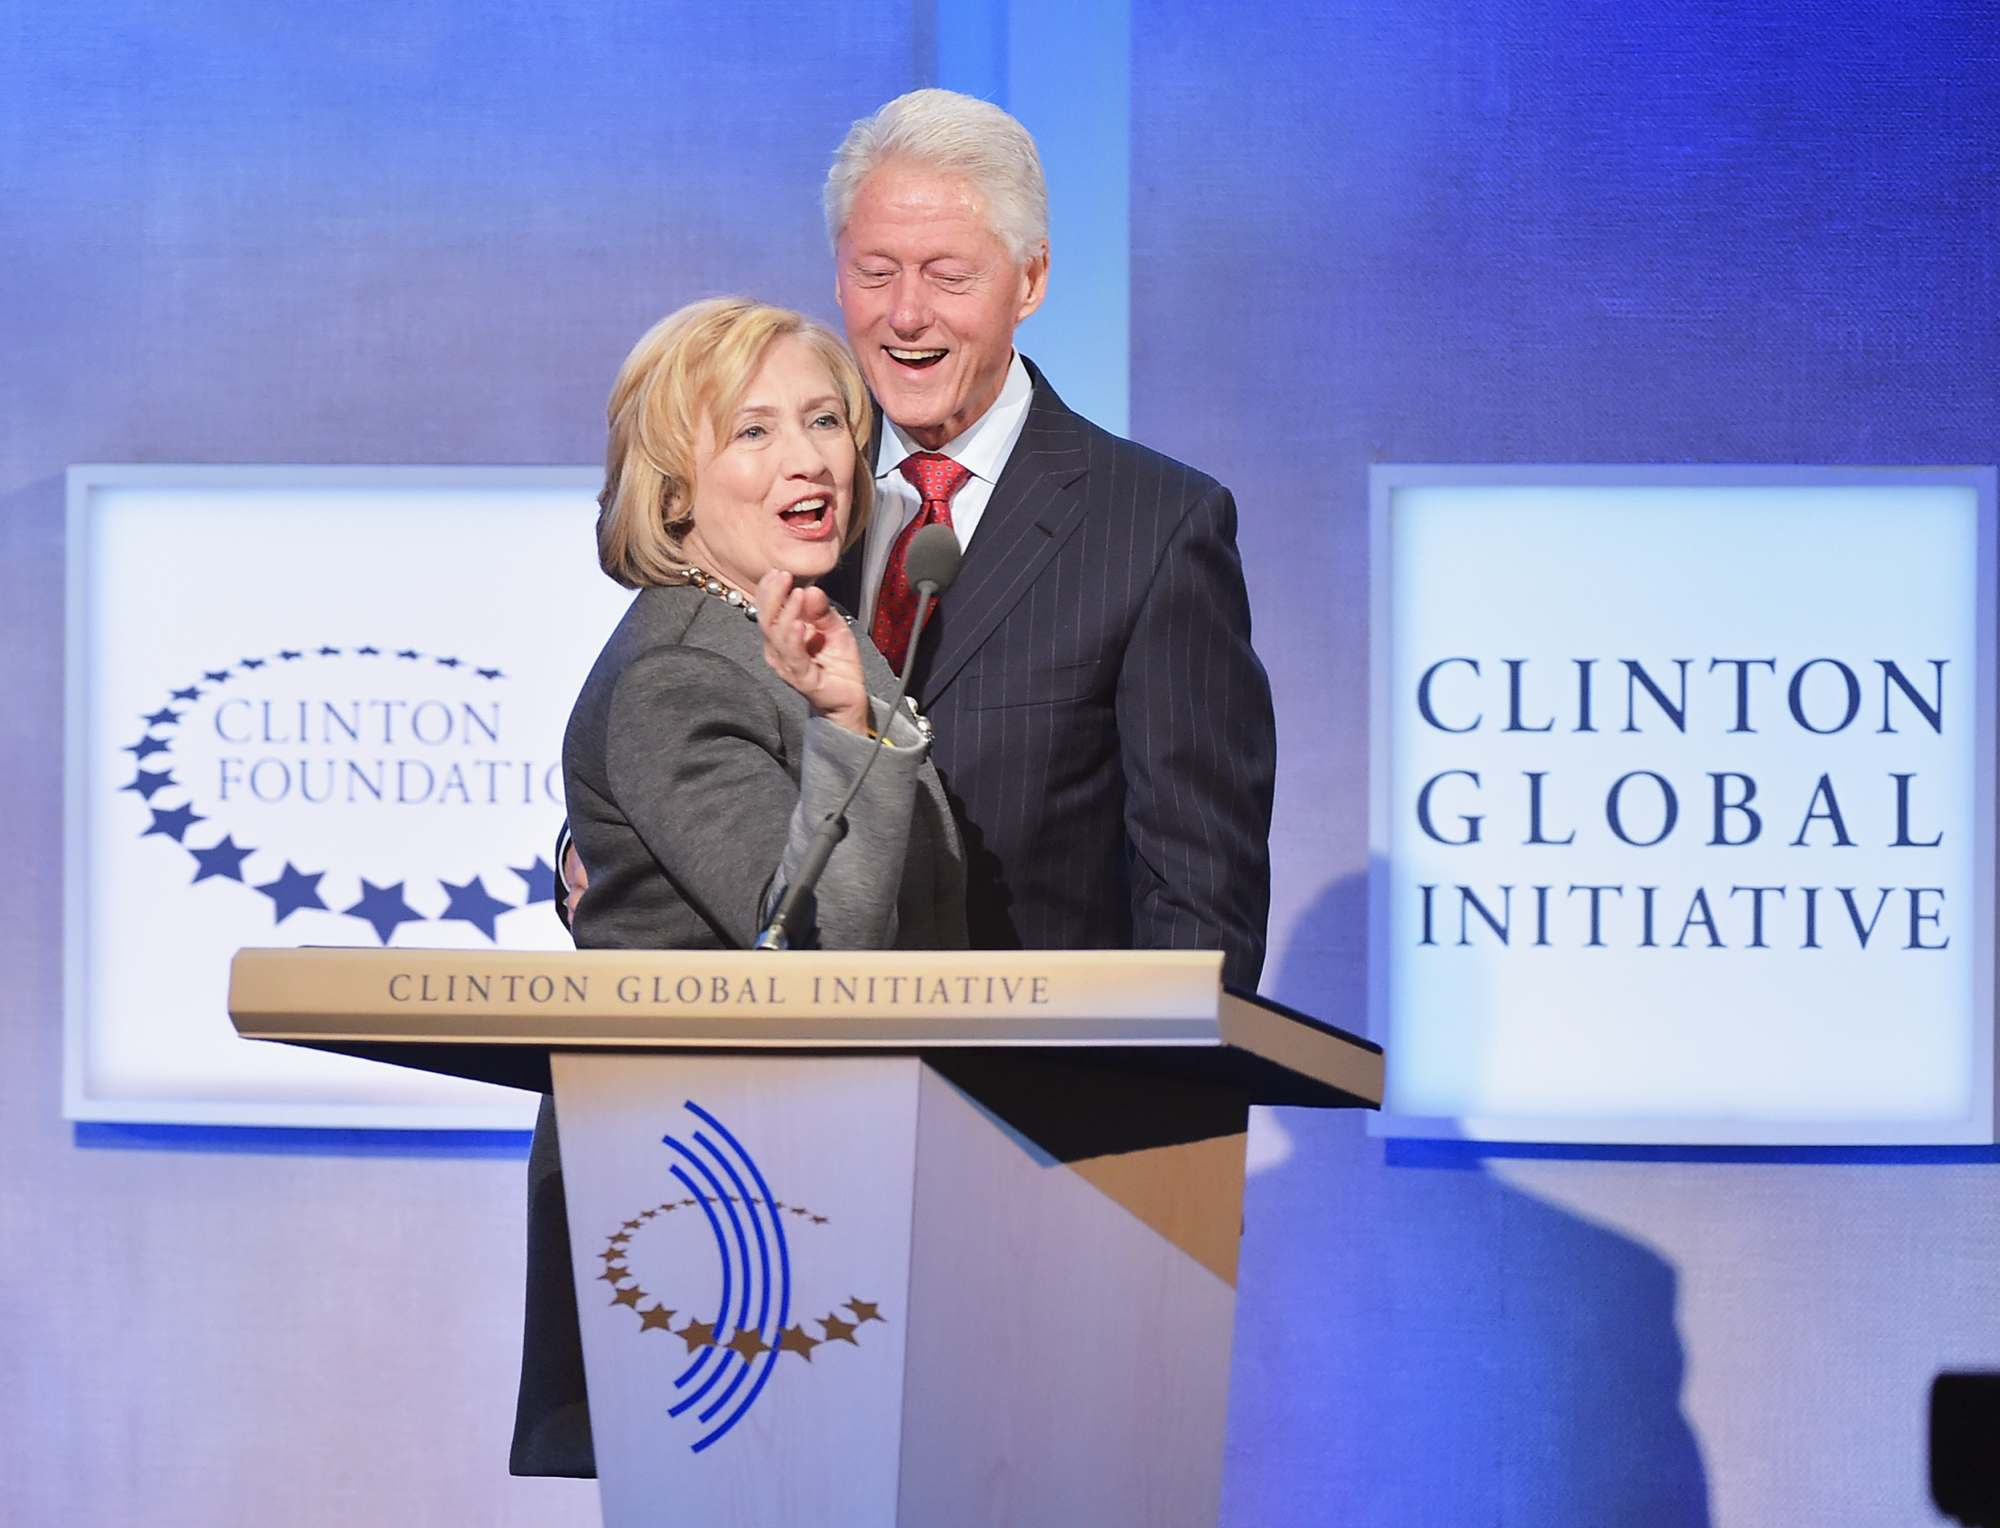 In this Sept. 22, 2014 file photo, former Secretary of State Hillary Clinton and former President Bill Clinton address the audience at the annual Clinton Global Initiative meeting in New York City. (Photo by Michael Loccisano/Getty Images)